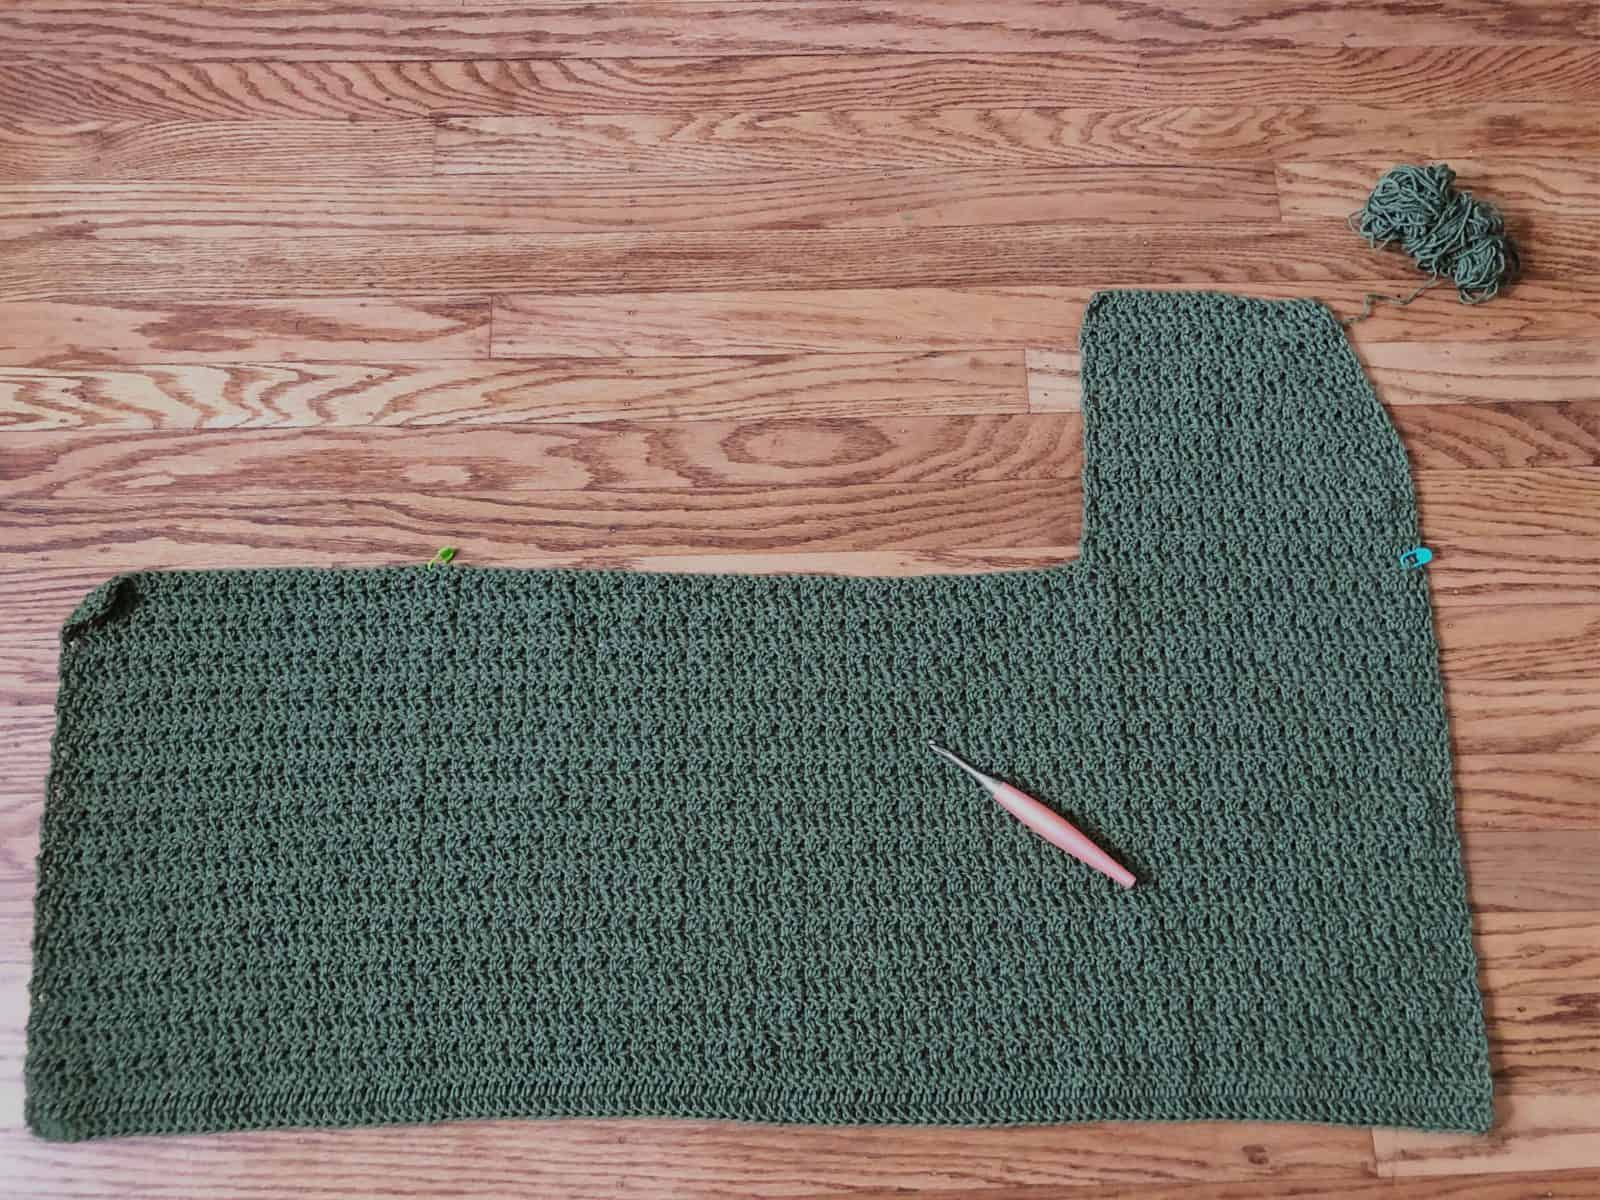 Cardigan with one panel side complete.